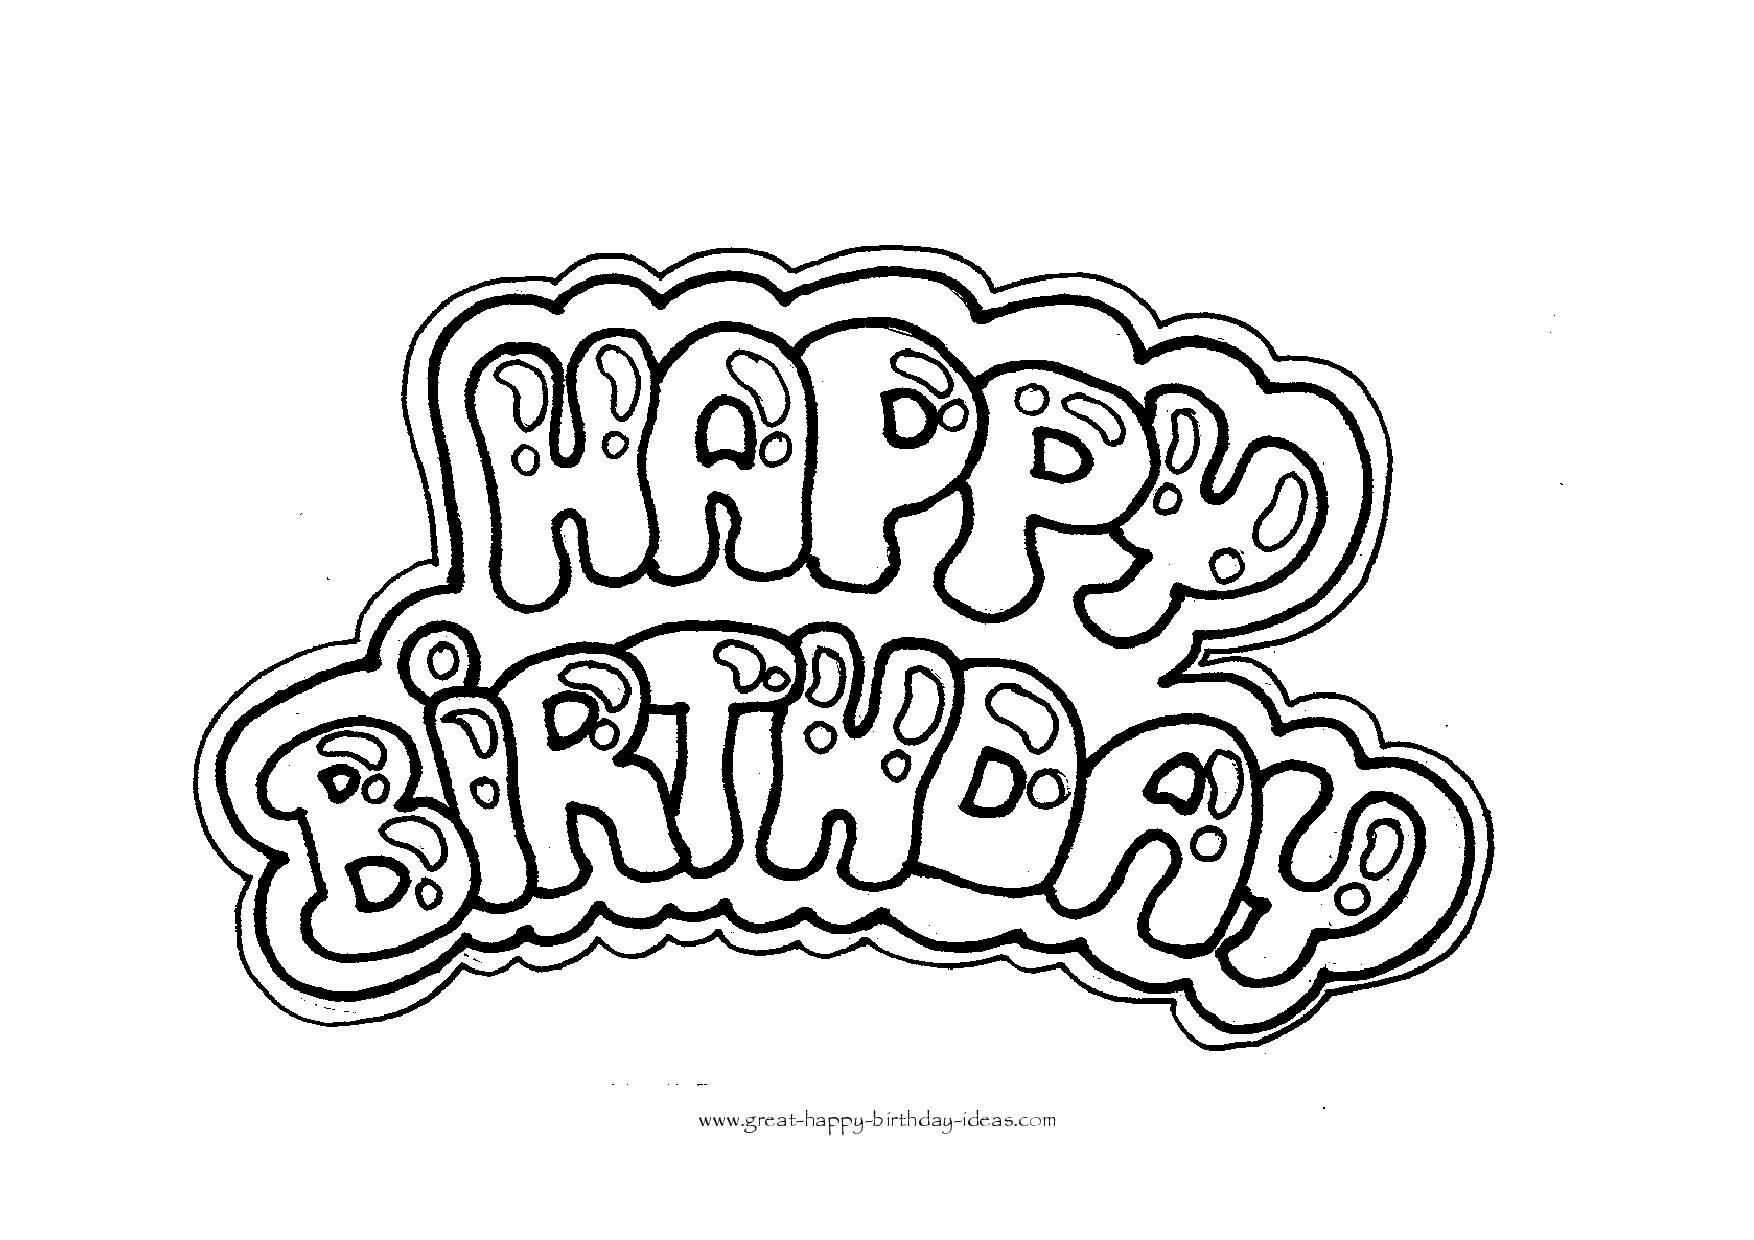 Birthday Drawing Ideas At Getdrawings Com Free For Personal Use